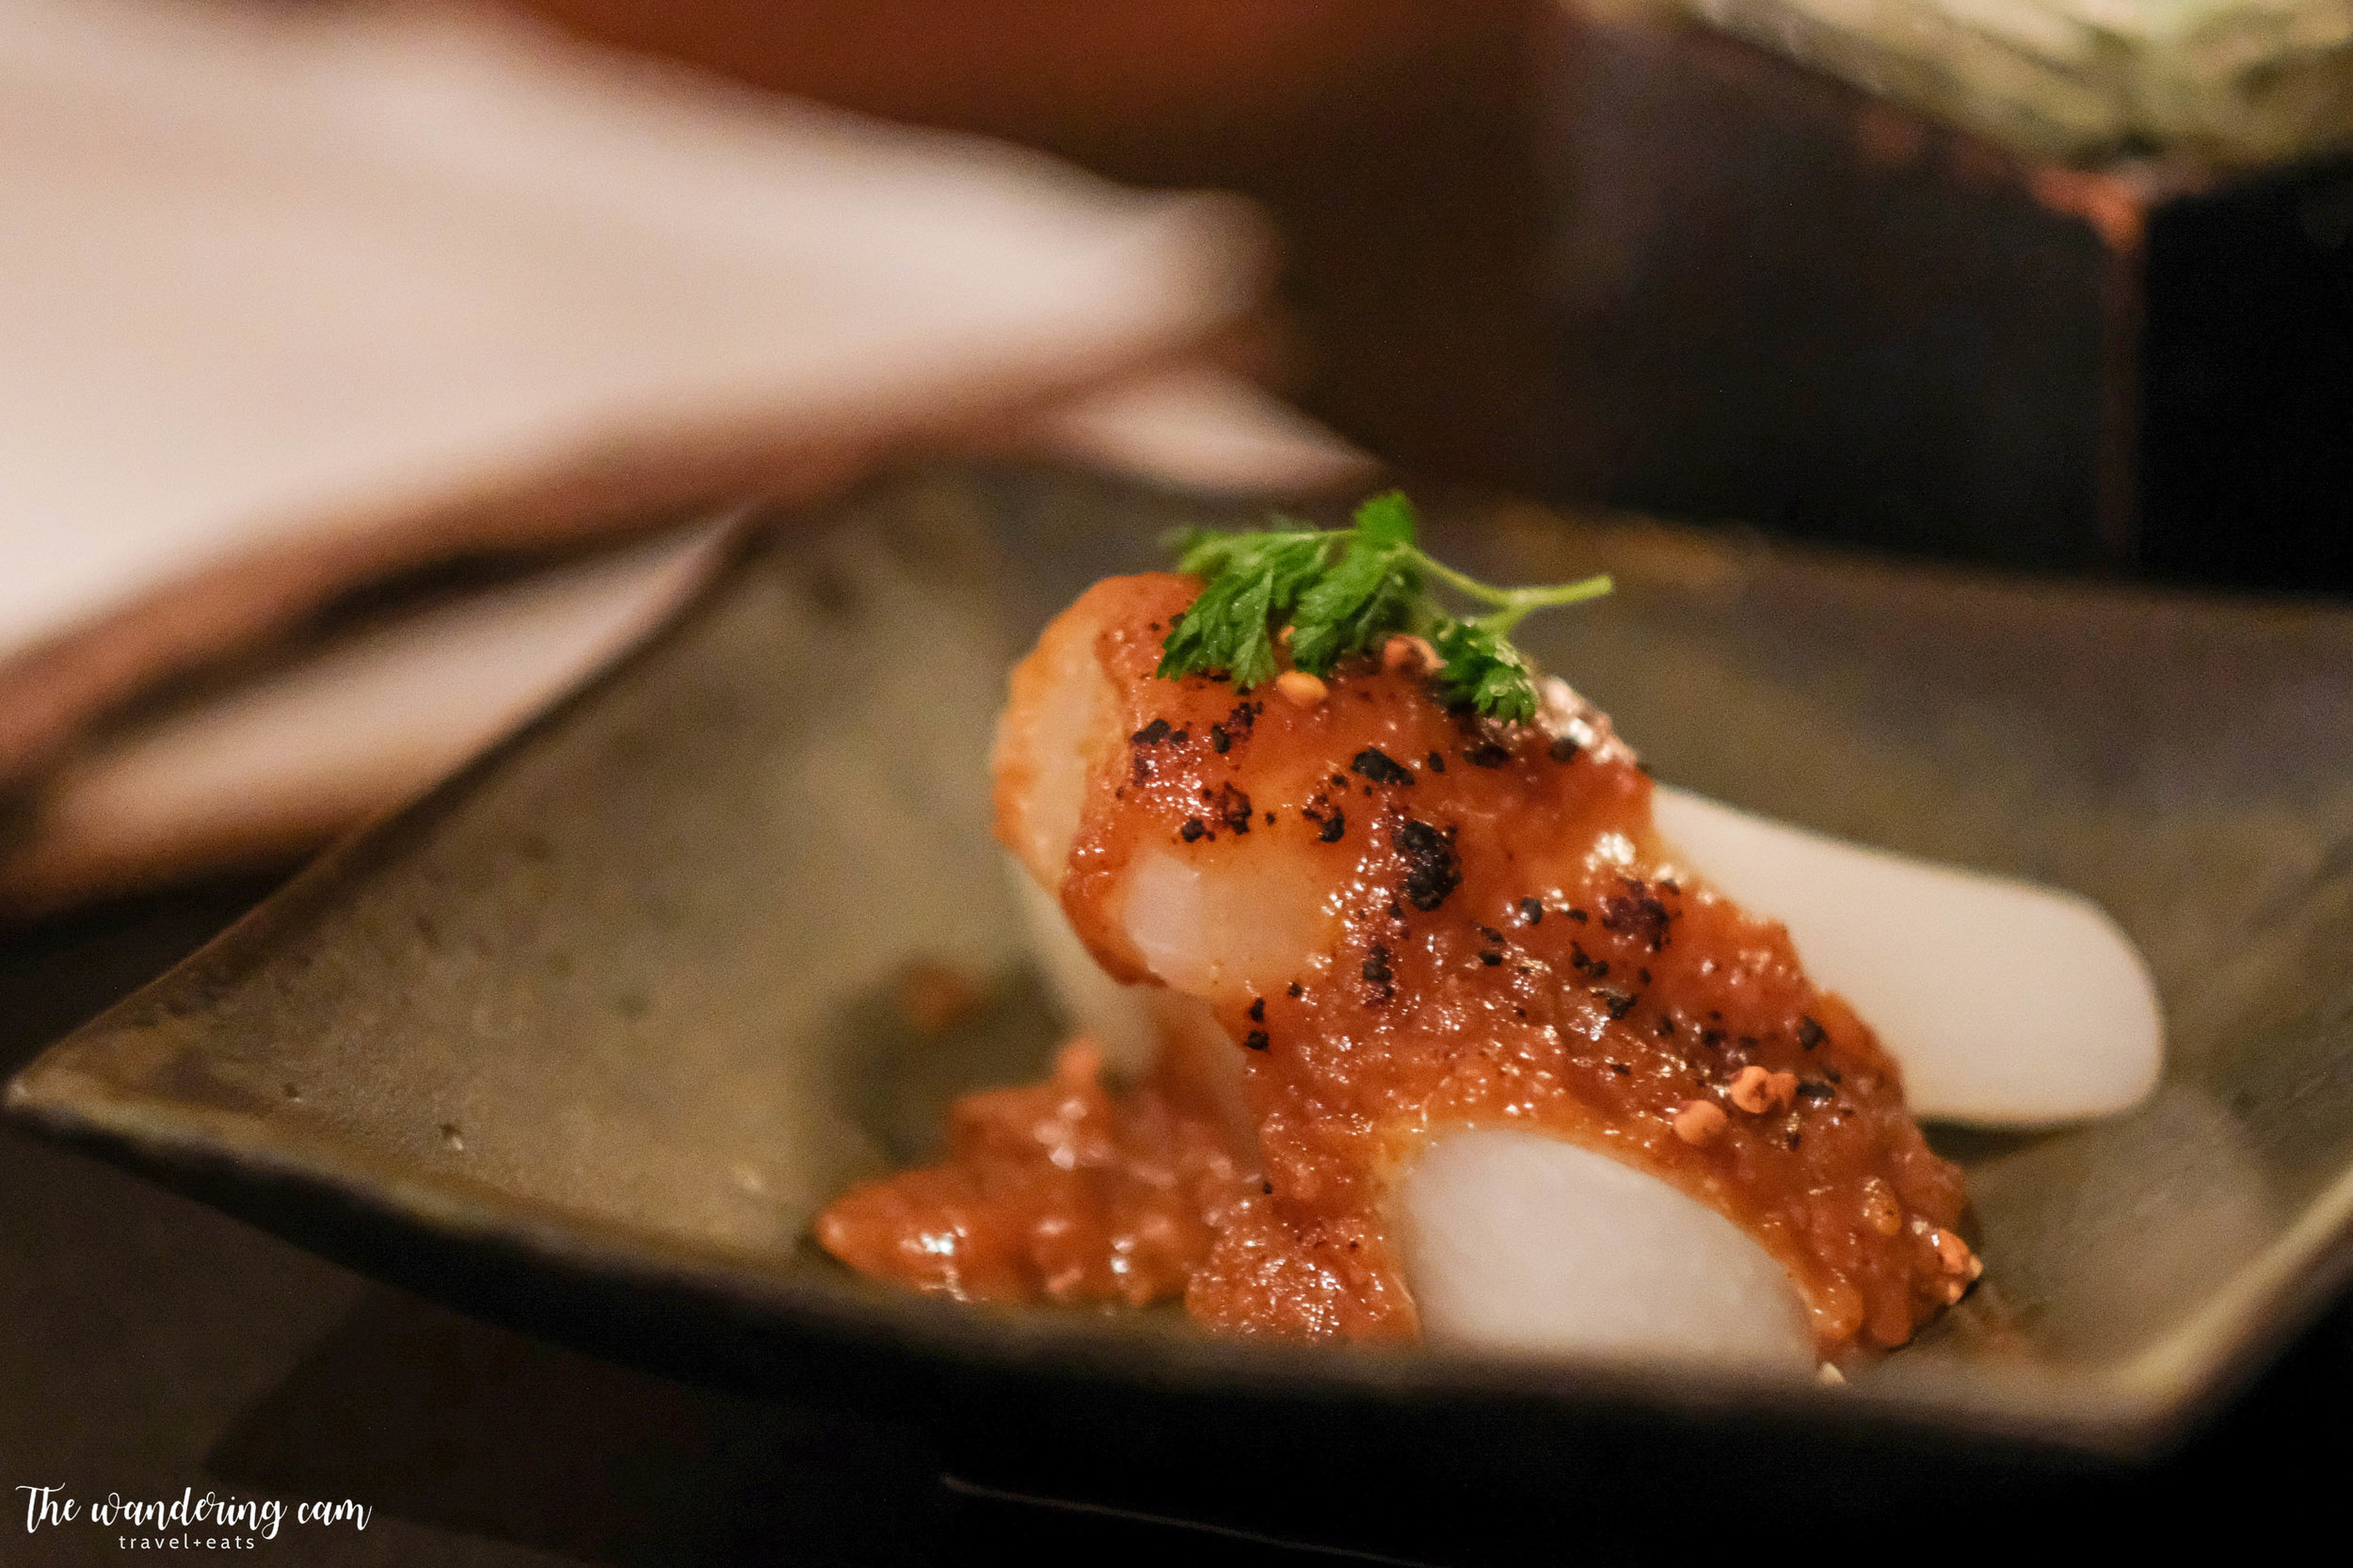 Furofuki Daikon  - tender stewed daikon with sweet miso sauce, delicious quintessential Japanese flavours